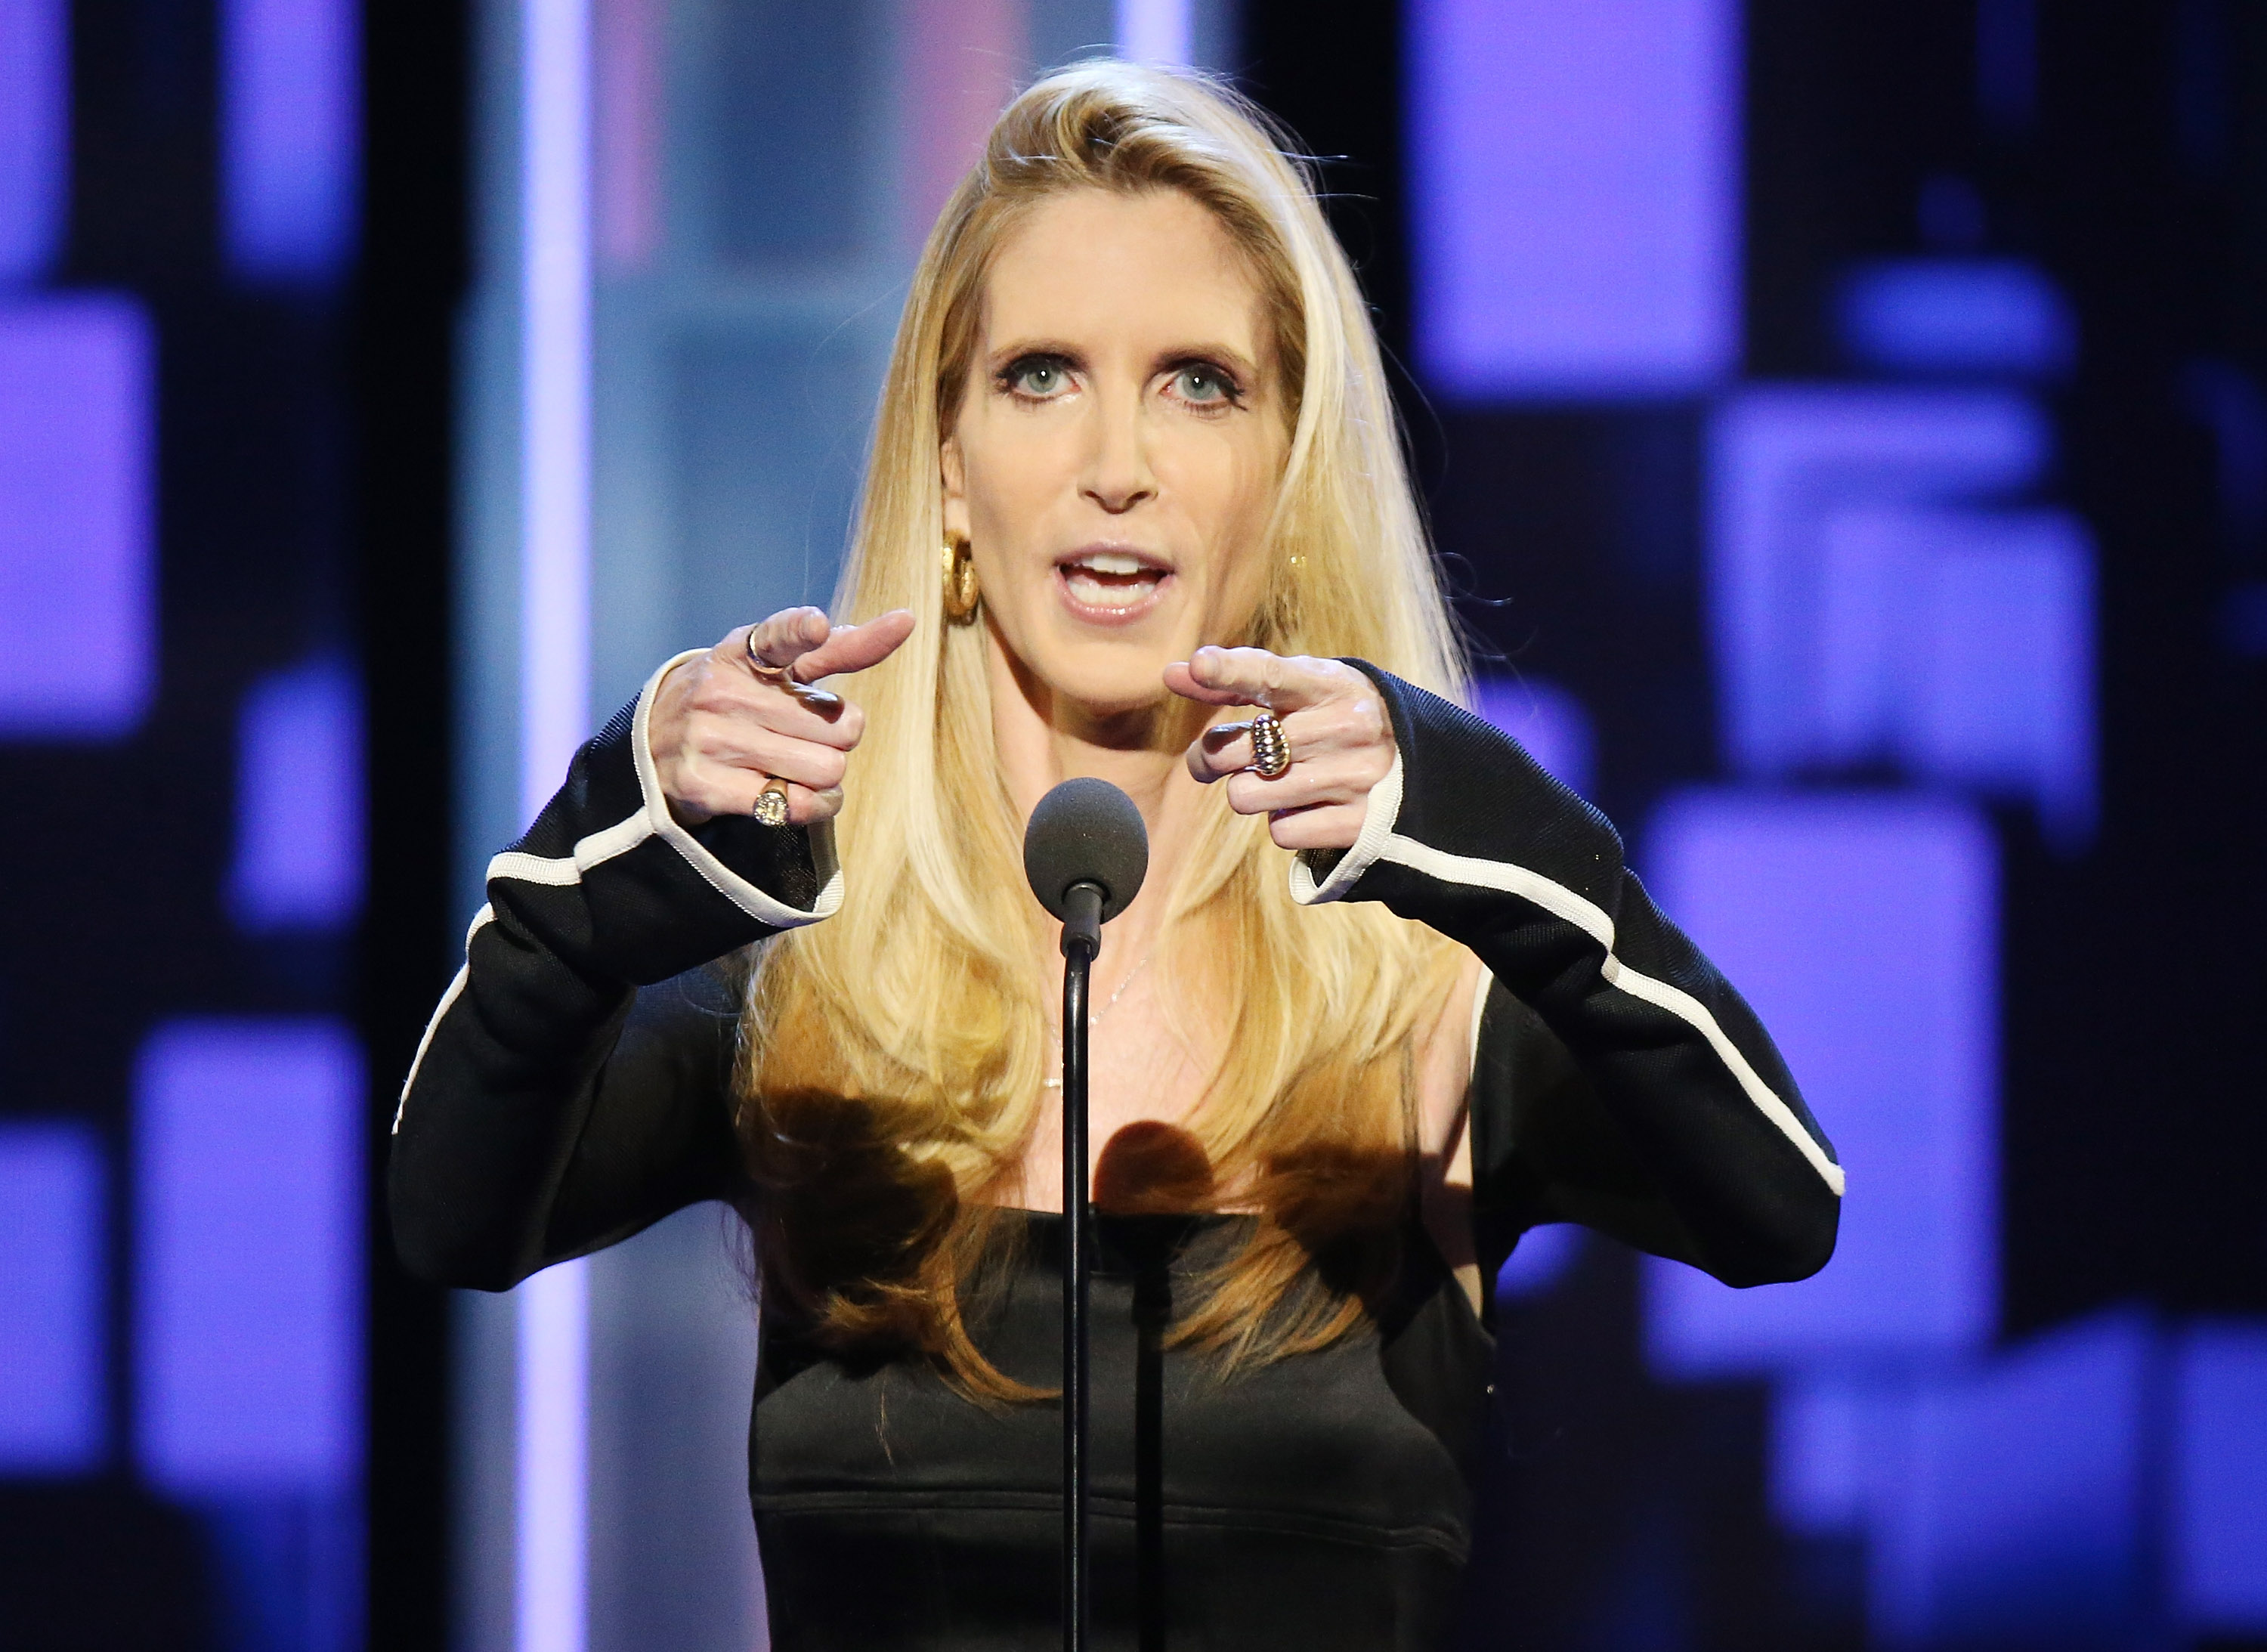 Ann Coulter says Trump may 'sell out' on immigration